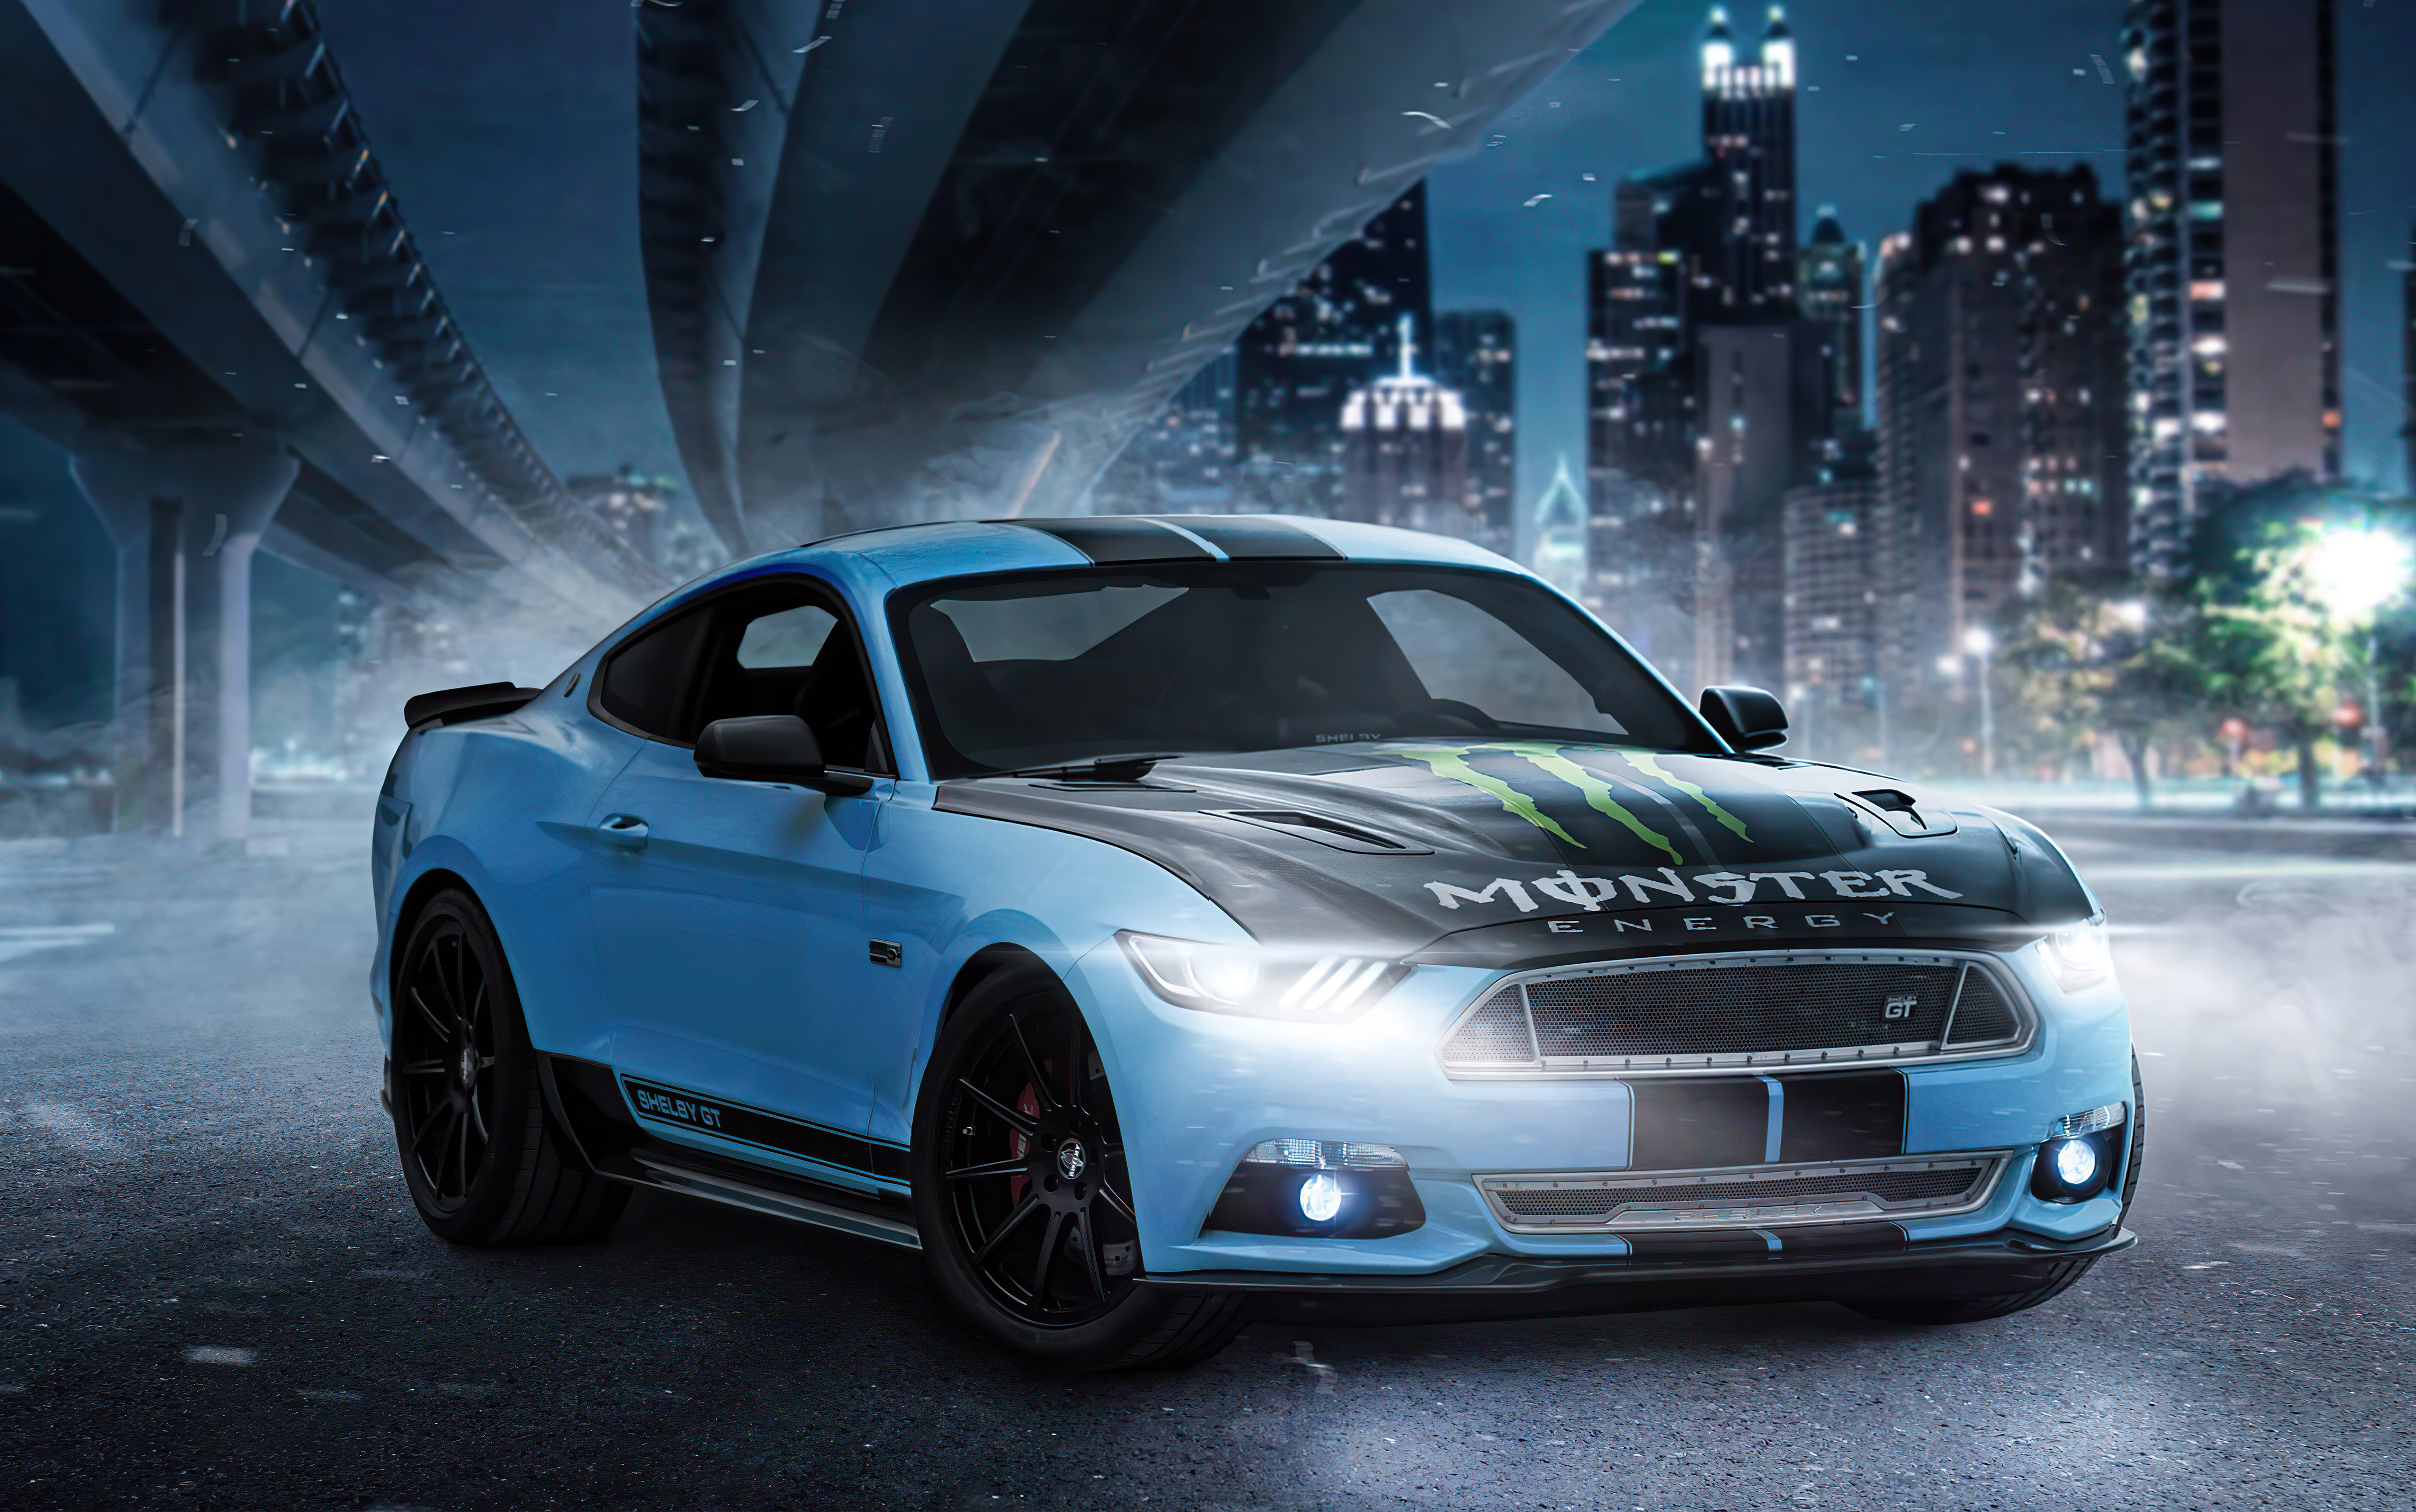 ford mustang skyblue on streets 4k 1620169892 - Ford Mustang Skyblue On Streets 4k - Ford Mustang Skyblue On Streets 4k wallpapers